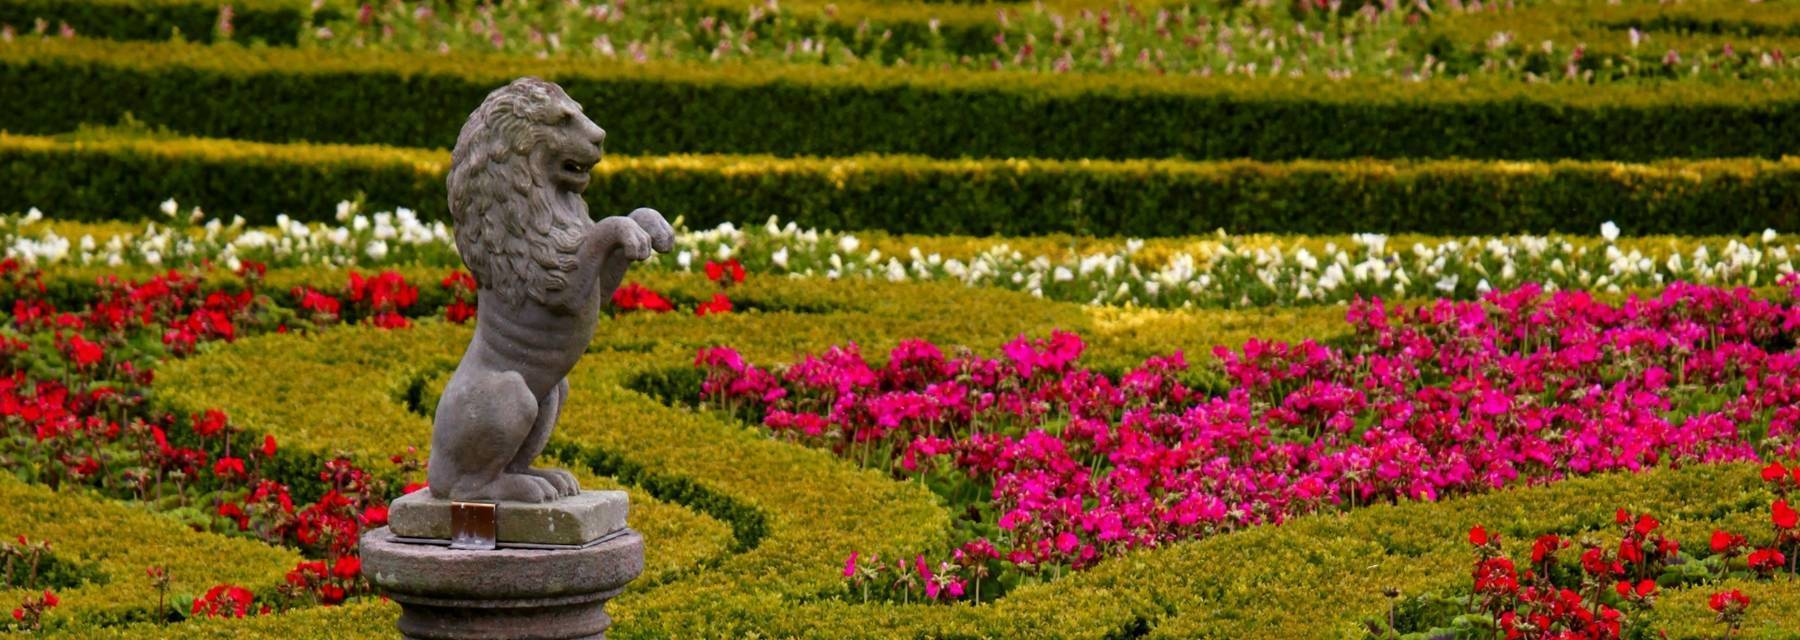 Statue of a lion among flowers at Pitmedden Garden